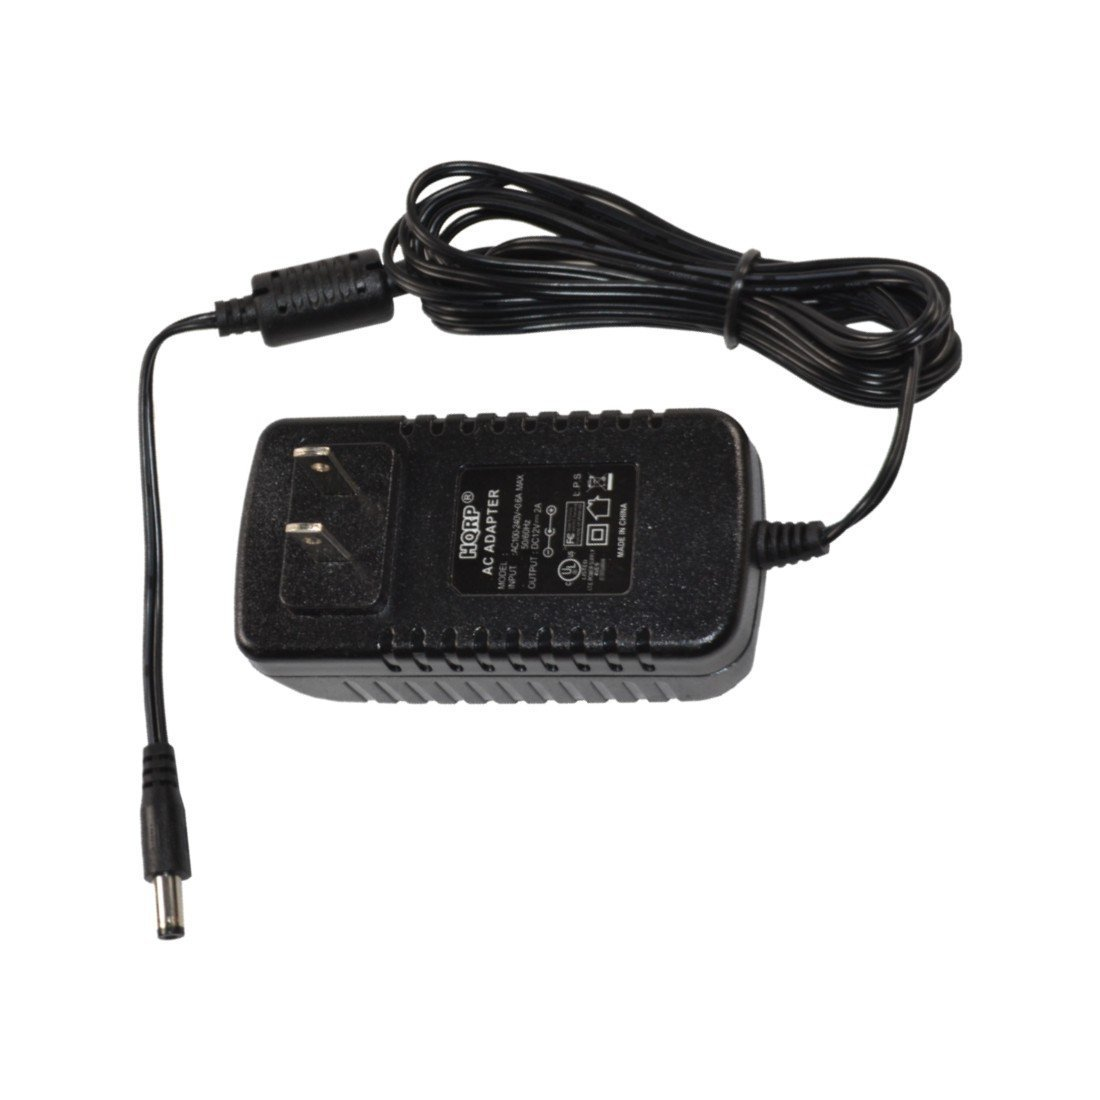 HQRP 12V AC Adapter for Sangean PR-D7 AM FM Digital Rechargeable Portable Radio Receiver Power Supply Cord Adaptor PRD7 DCT120050 + Euro Plug Adapter